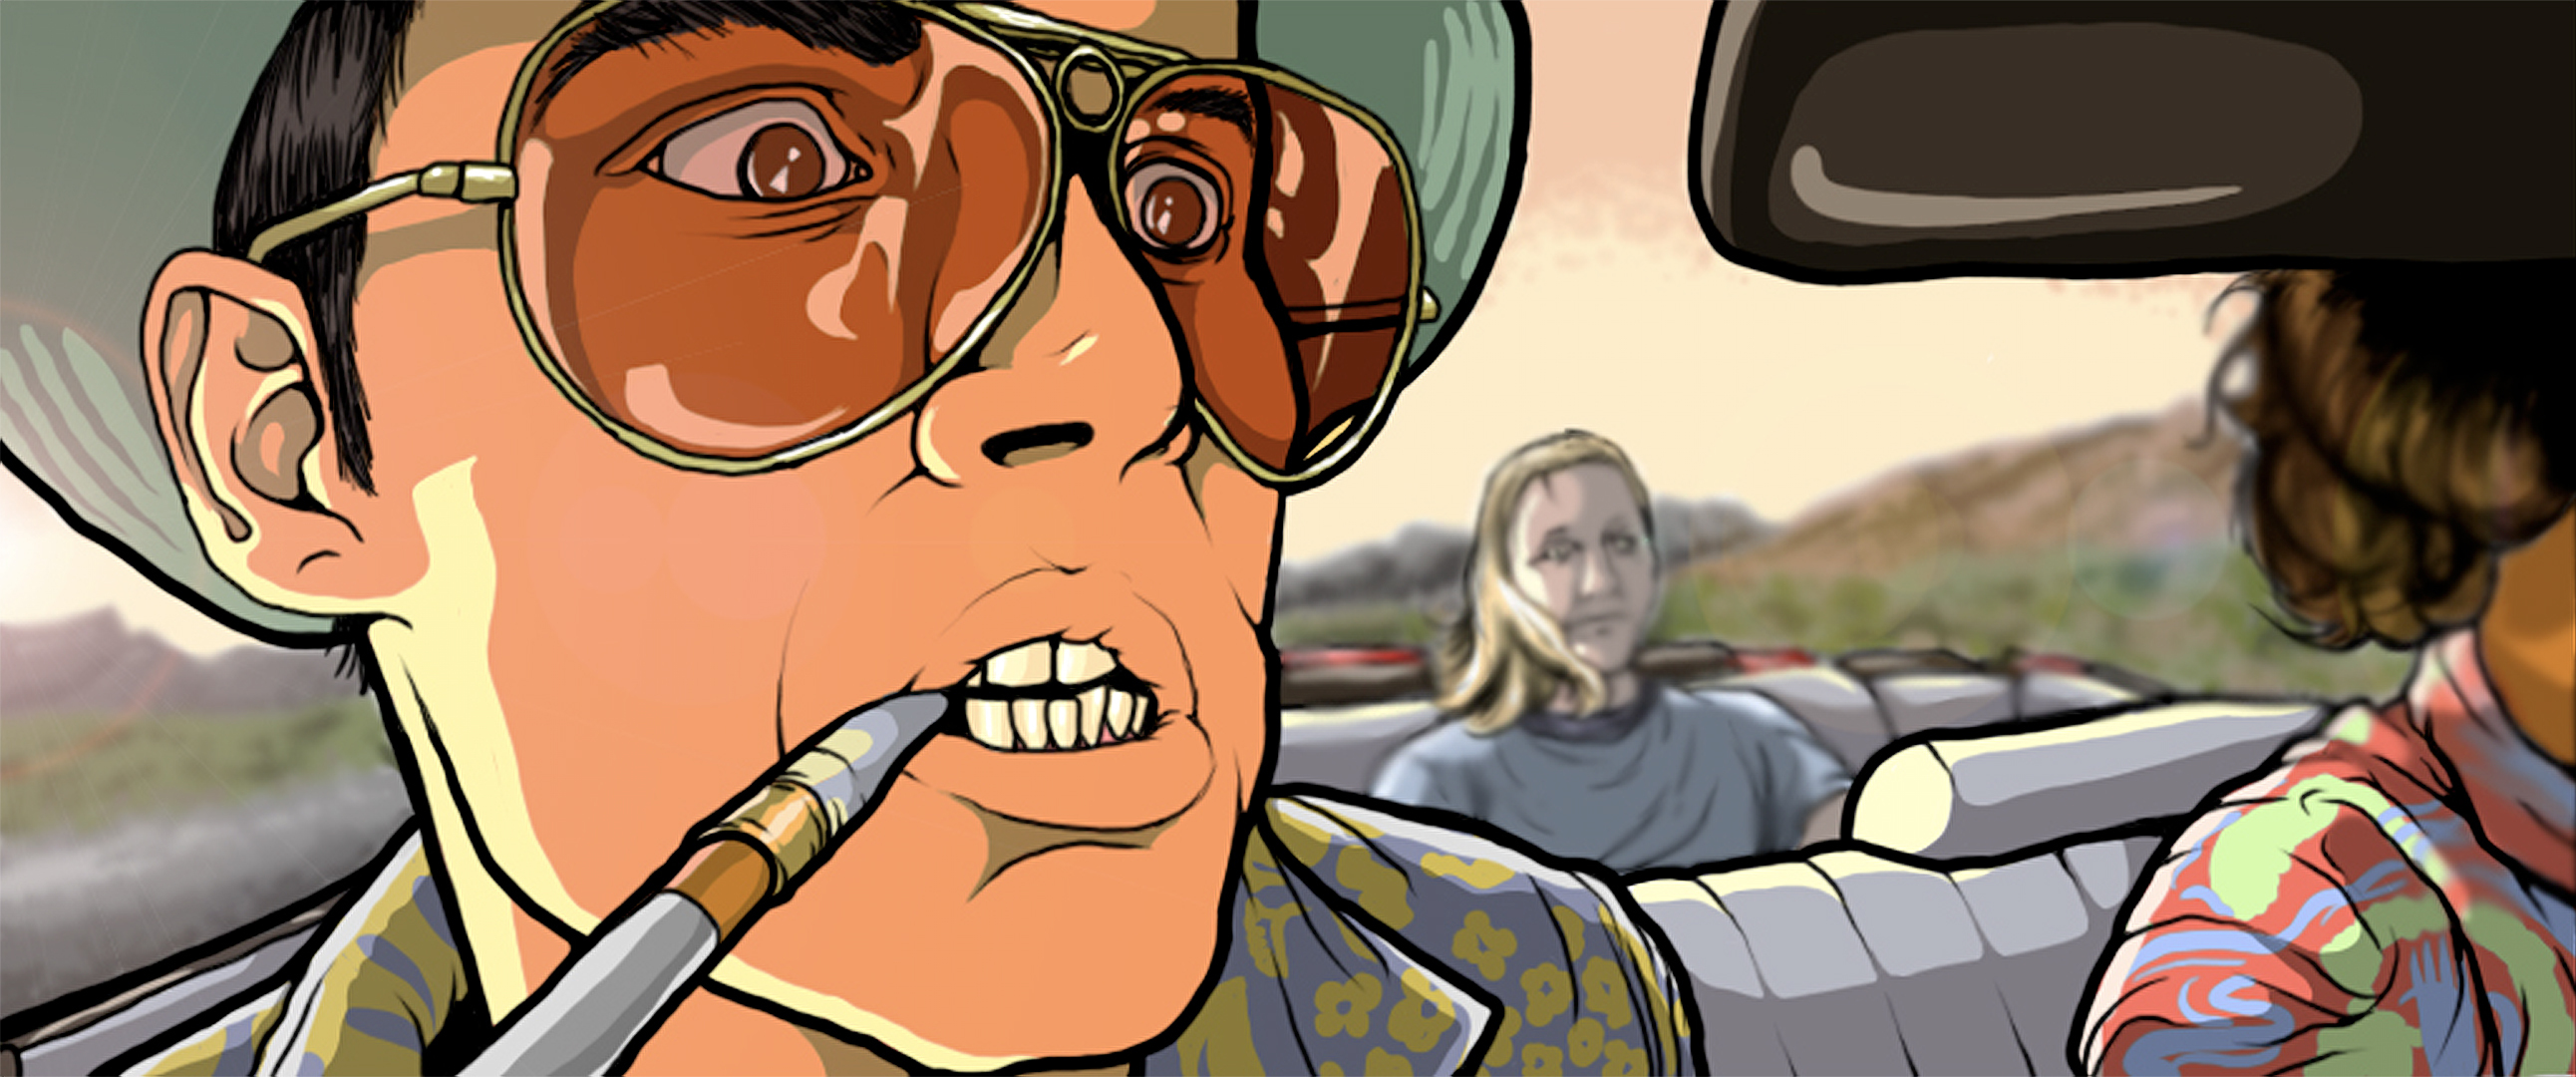 HQ Fear And Loathing Wallpapers | File 1314.67Kb